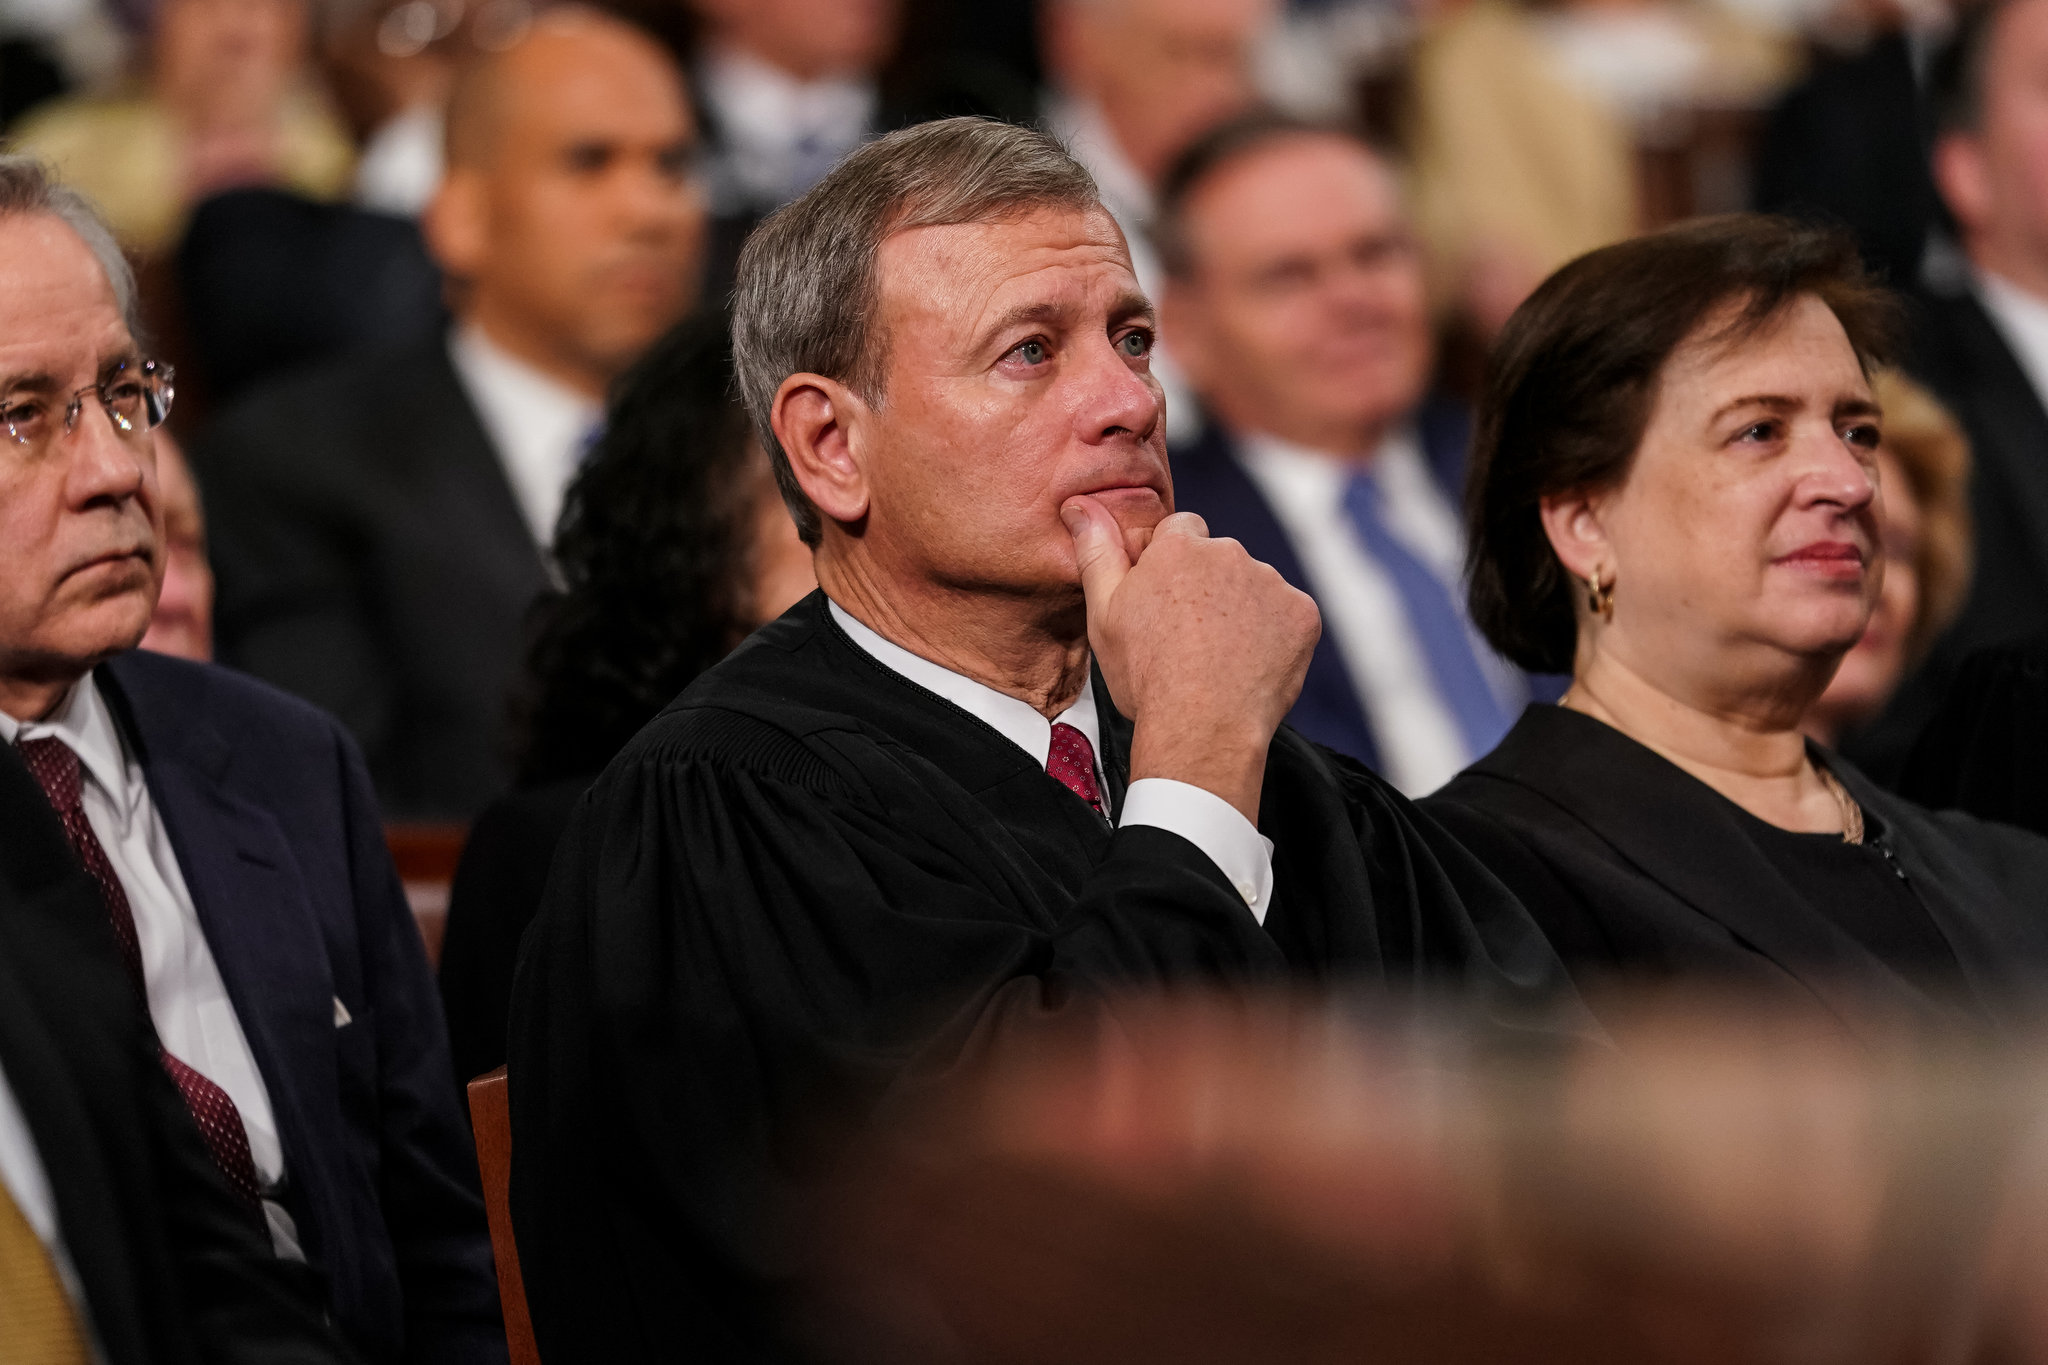 Supreme Court Chief Justice John Roberts is unequivocally conservative, but as only the 17th chief justice in US history and after 16 years as chief justice, Roberts is in a position to tip the high court in either direction on highly partisan cases such as extreme gerrymandering, the citizenship question on the Census and, once more, on the constitutionality of Obamacare. (Photo Credit: Doug Mills/The New York Times)